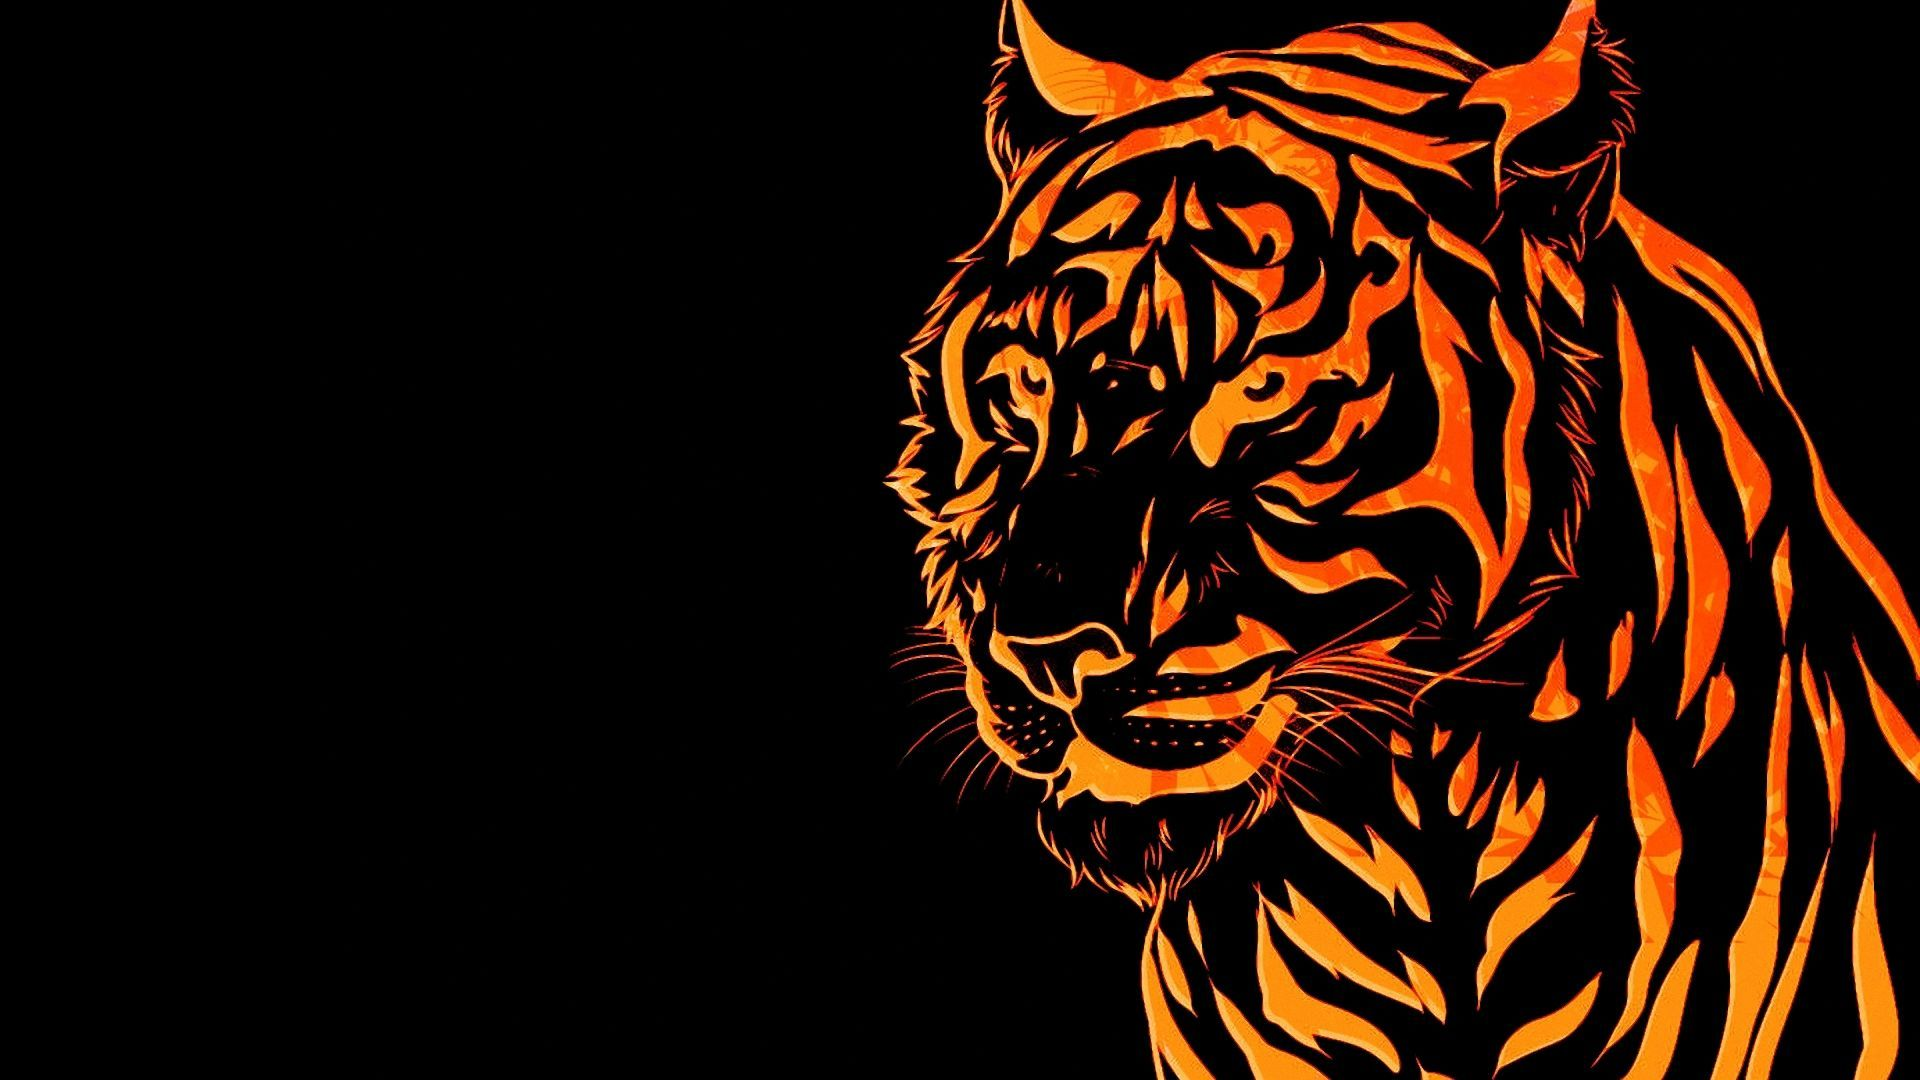 Tiger Wallpapers   Top Tiger Backgrounds   WallpaperAccess 1920x1080